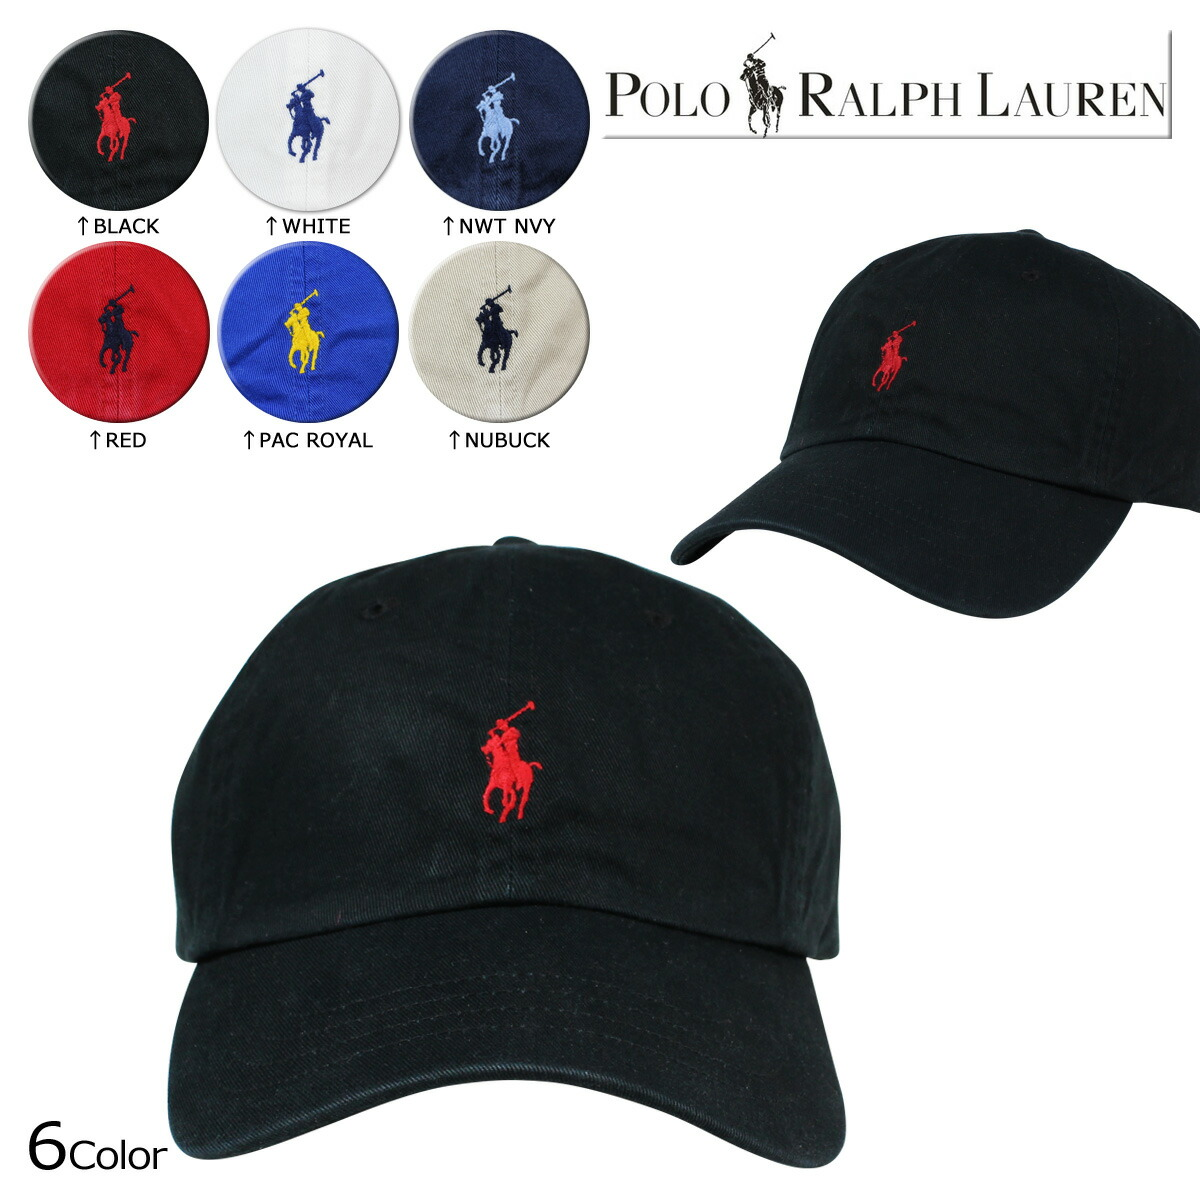 POLO RALPH LAUREN Polo Ralph Lauren Cap dad hats men women  8 9 Add 18cd12420c25